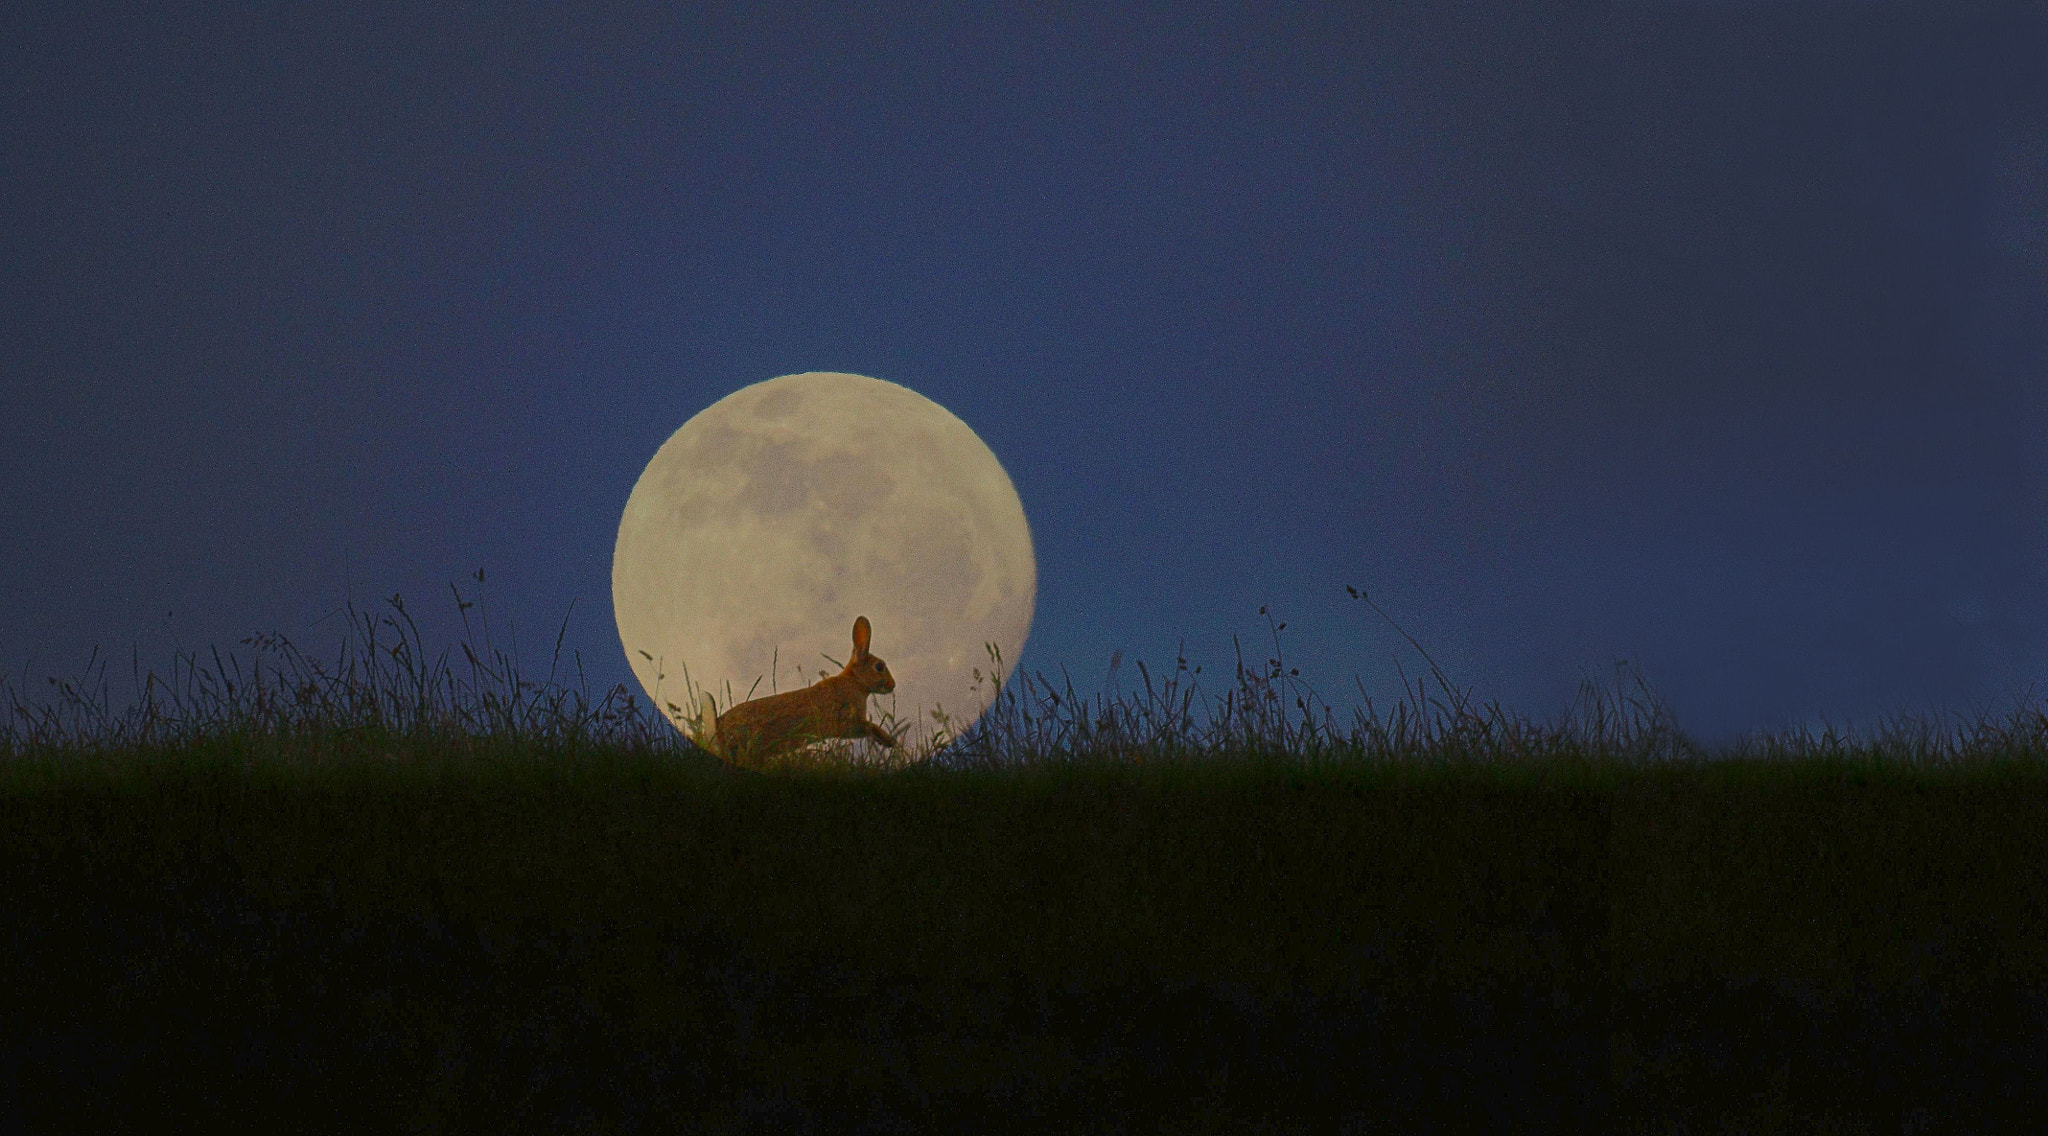 Photograph Rabbit in the Moon by Steve Adams on 500px